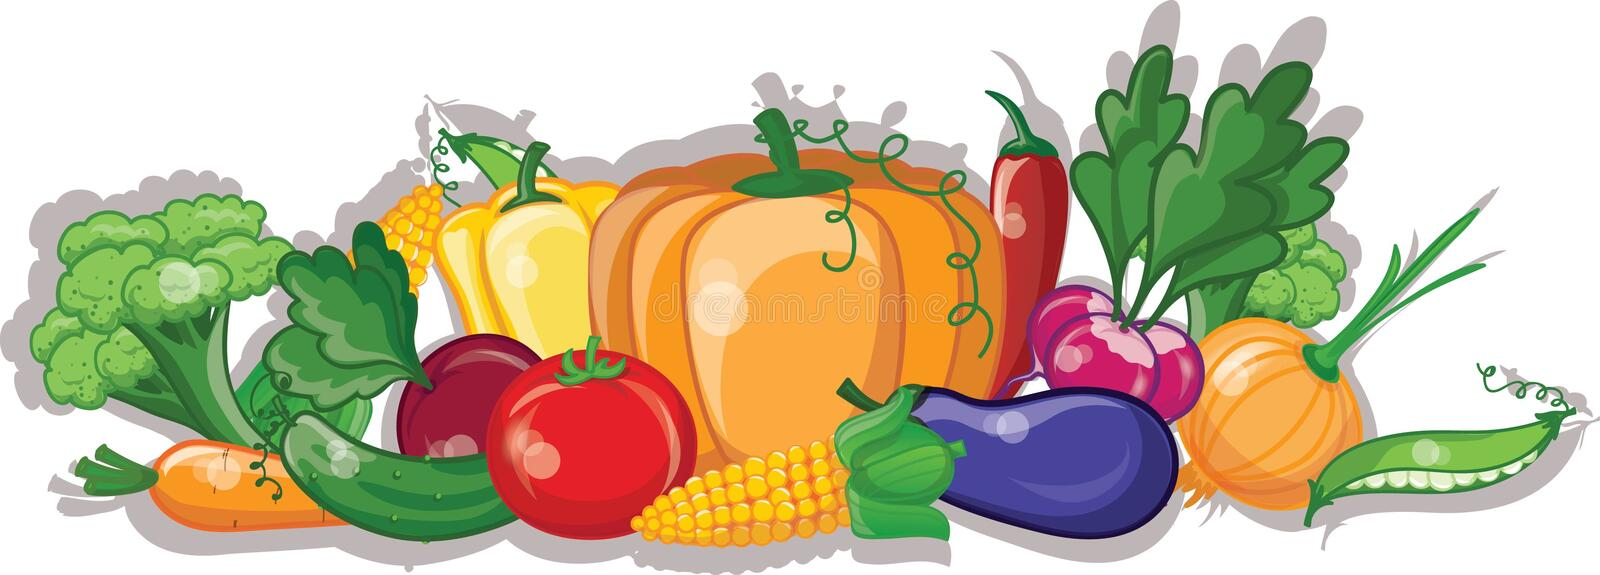 Cartoon vegetables and fruits,vector stock illustration